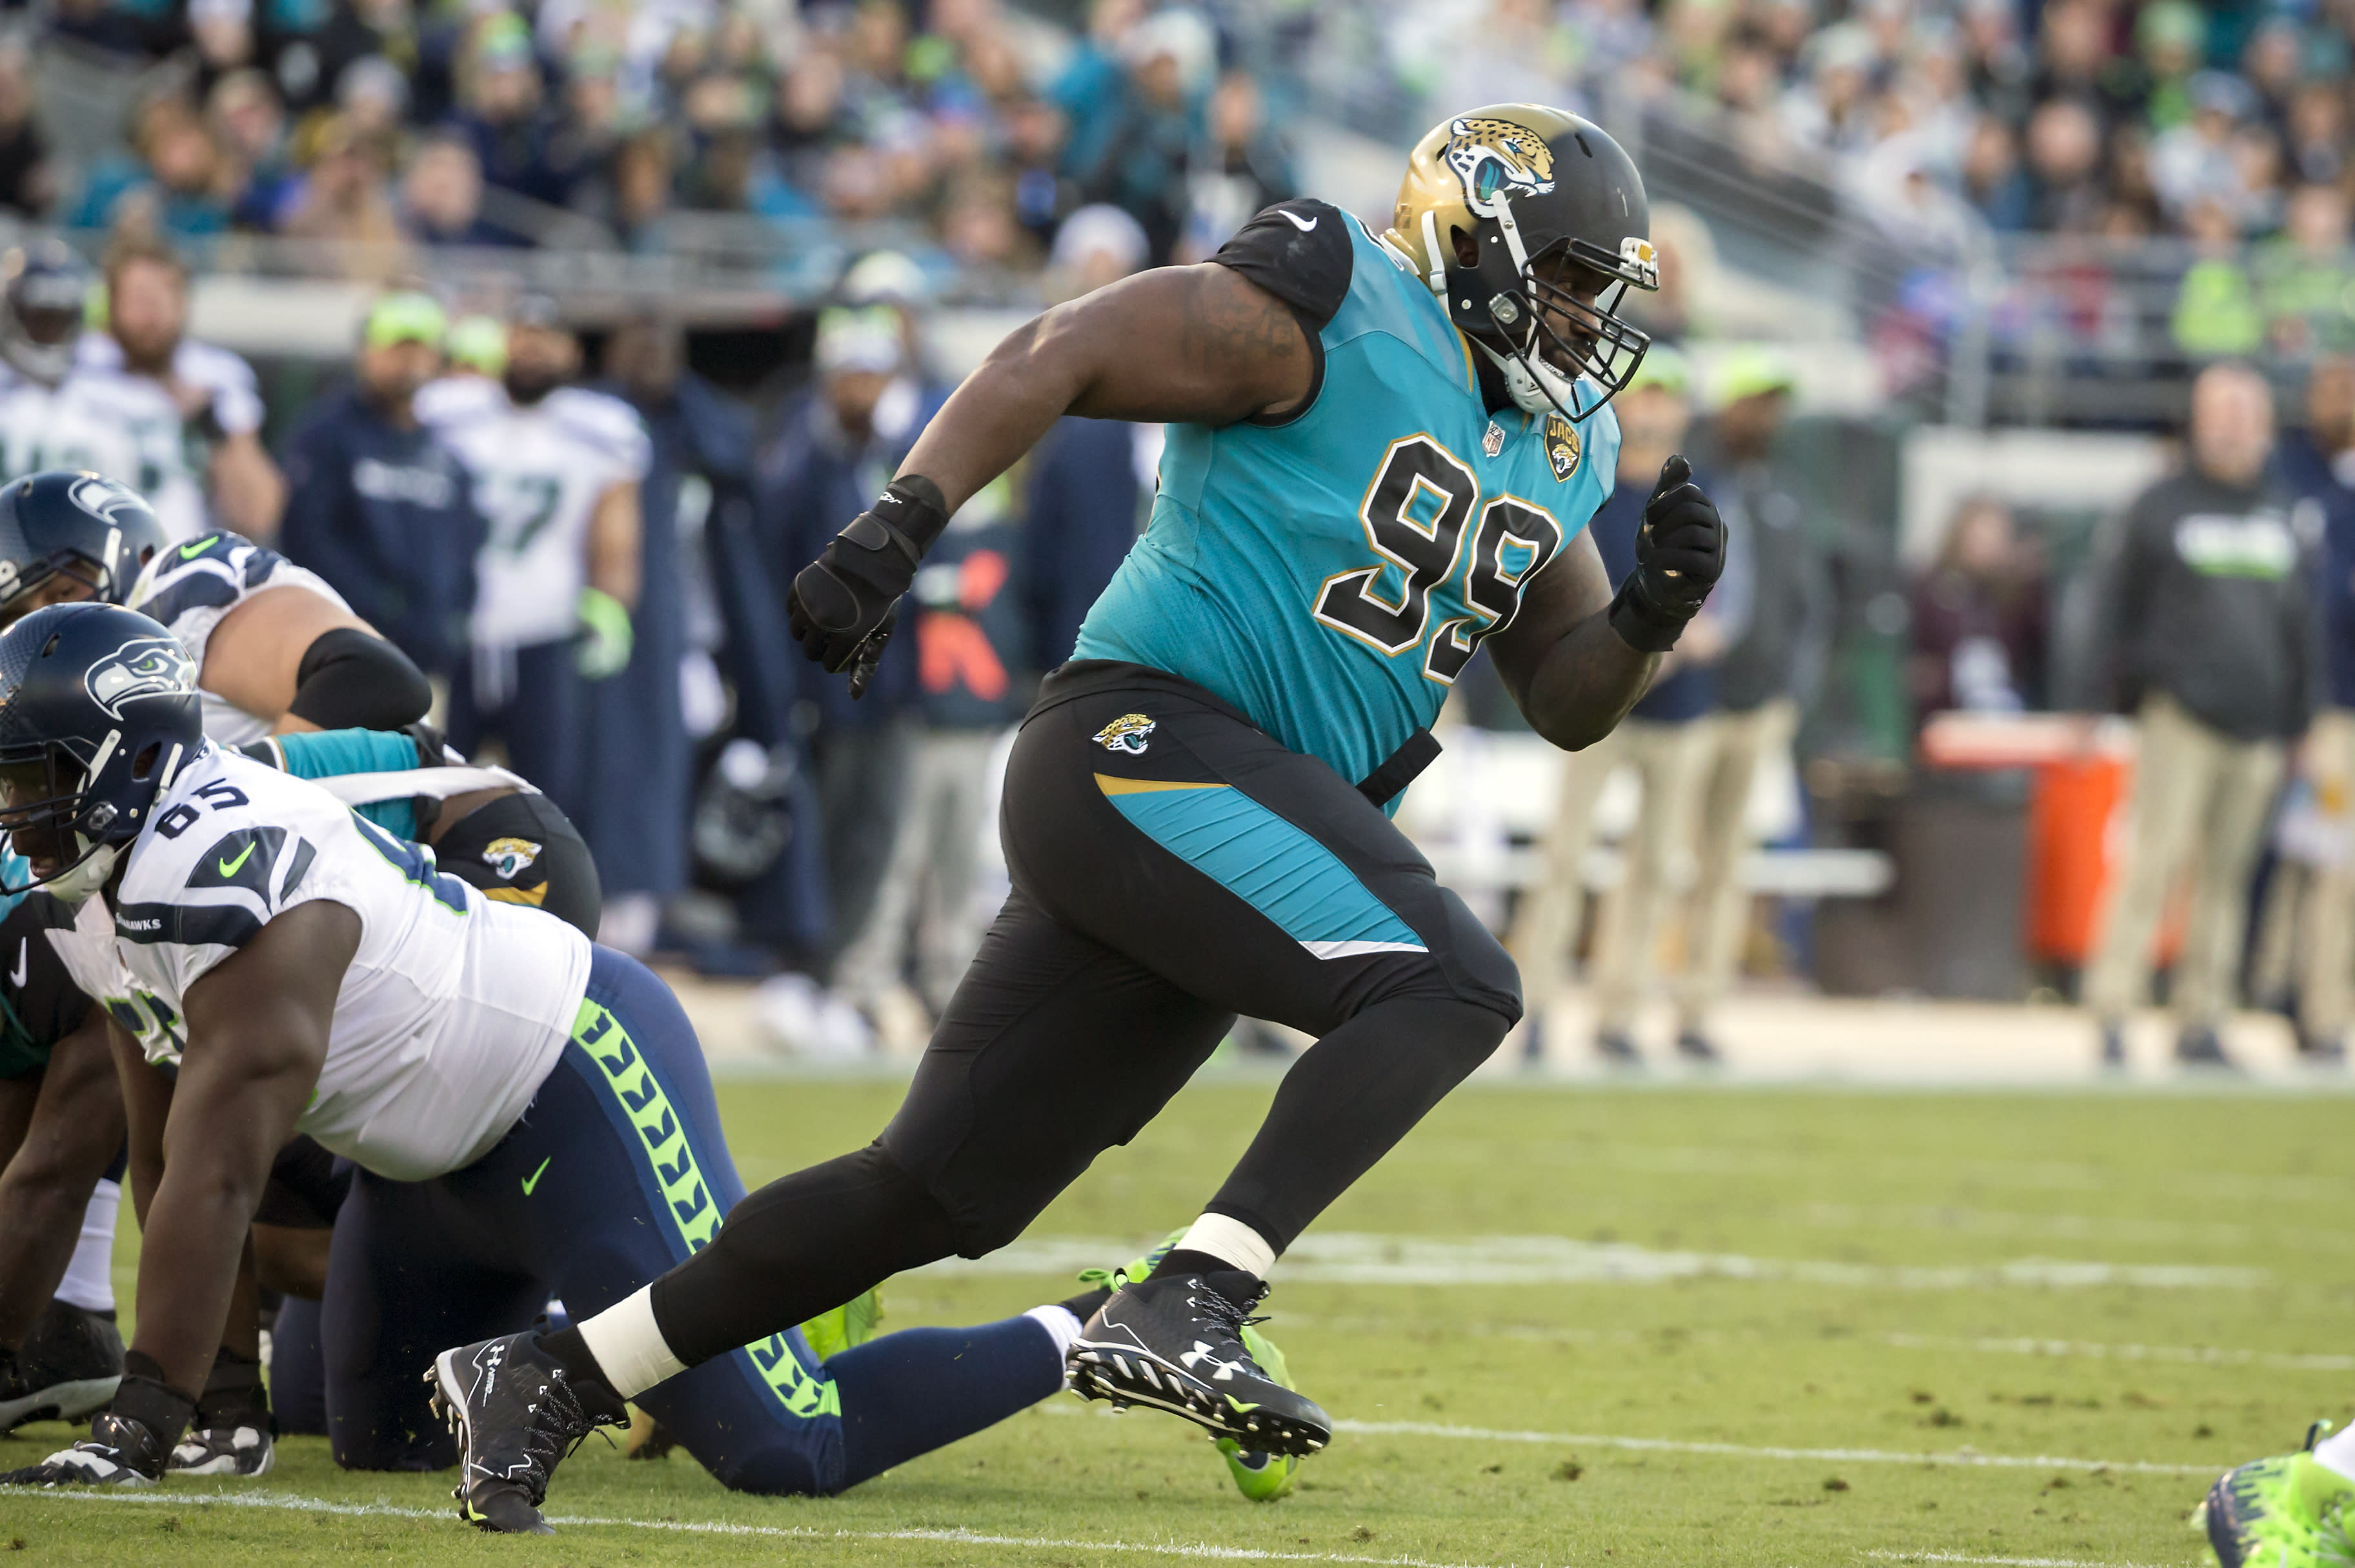 550a59297 Jaguars  Marcell Dareus facing multiple lawsuits over allegations of sexual  assault